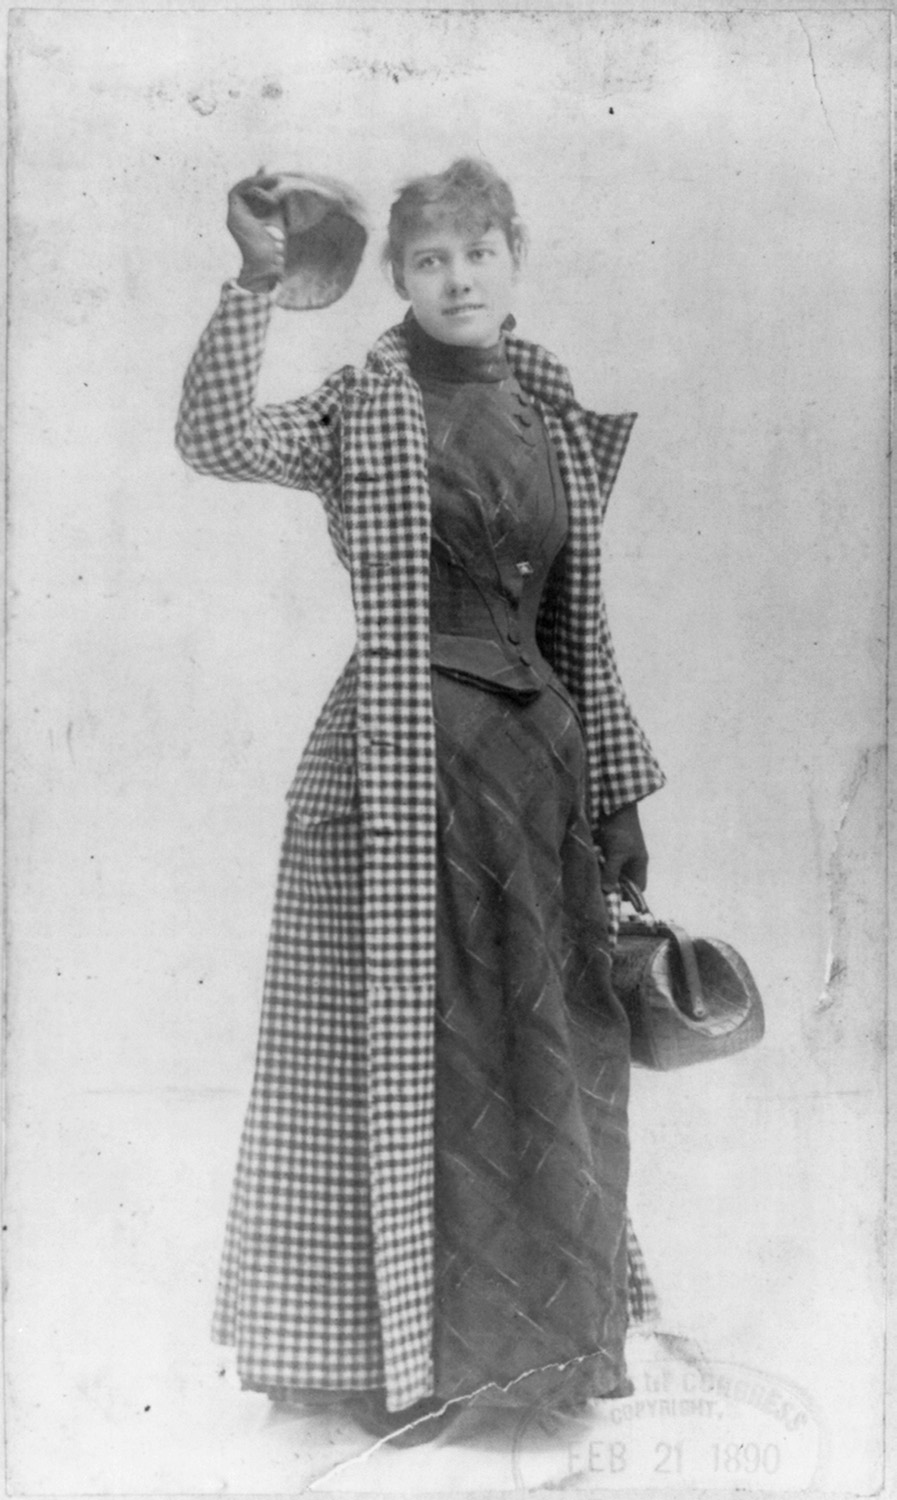 Nellie Bly posing for a publicity shot for The World.